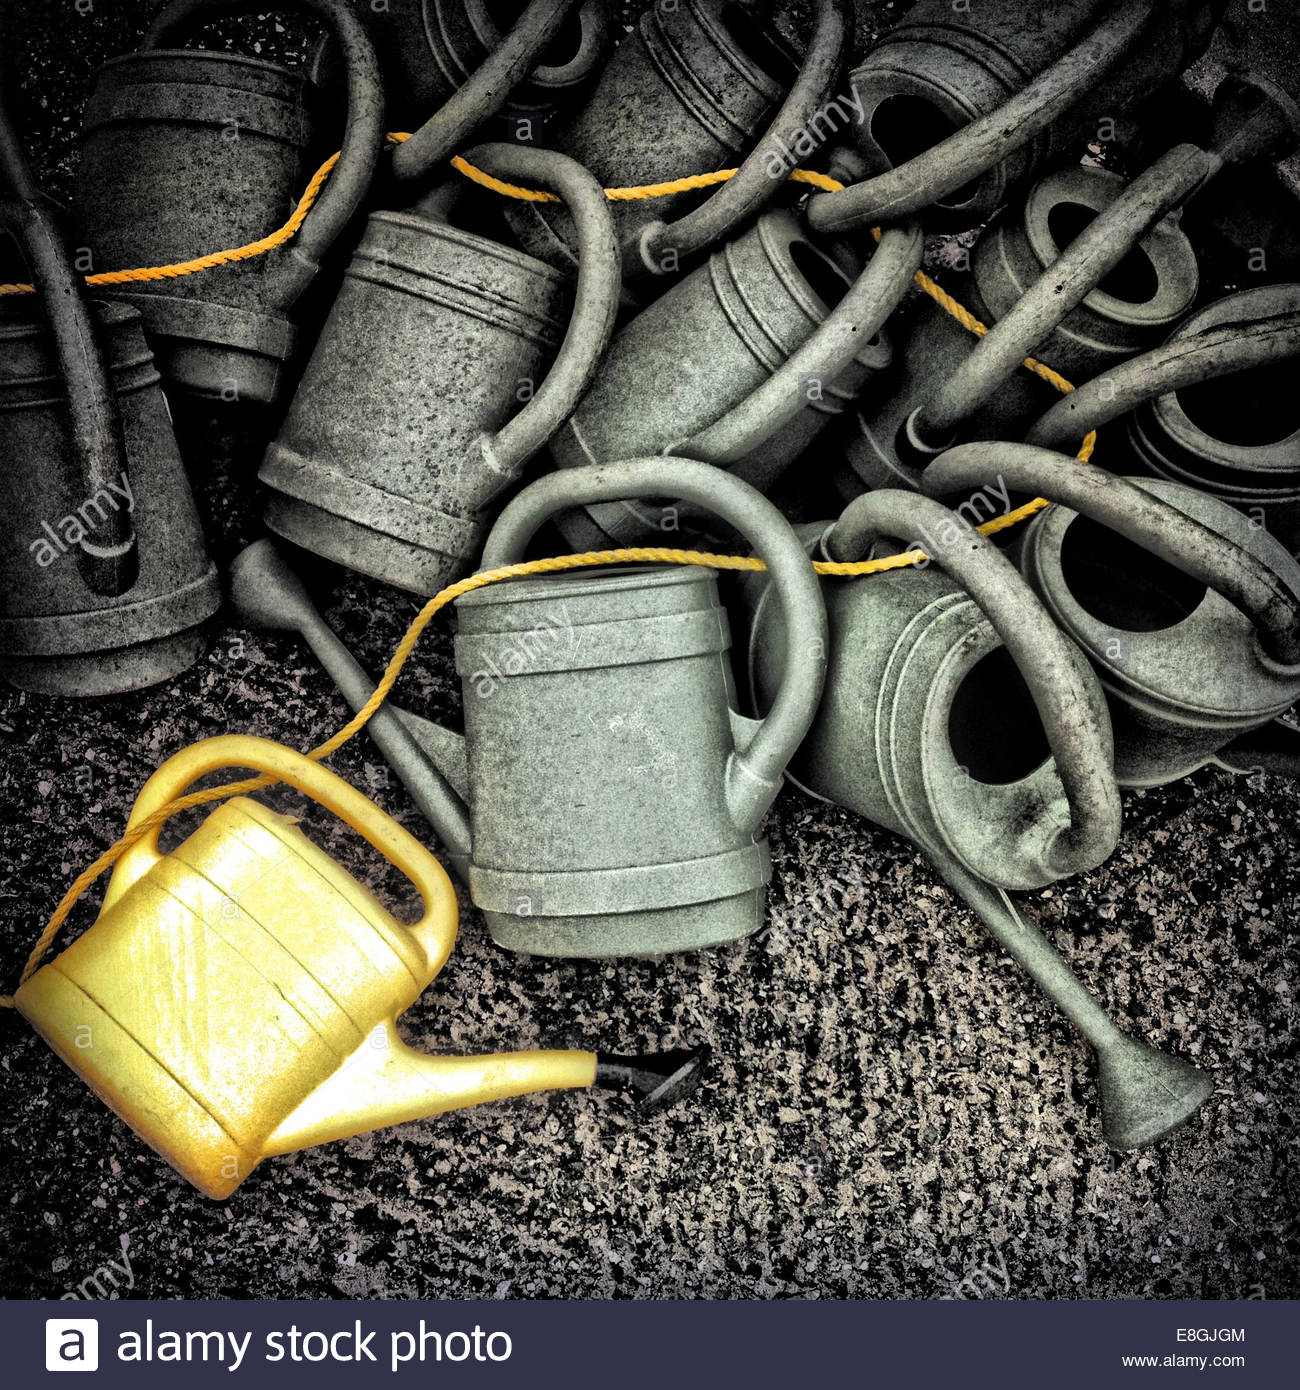 Watering cans, close up - Stock Image